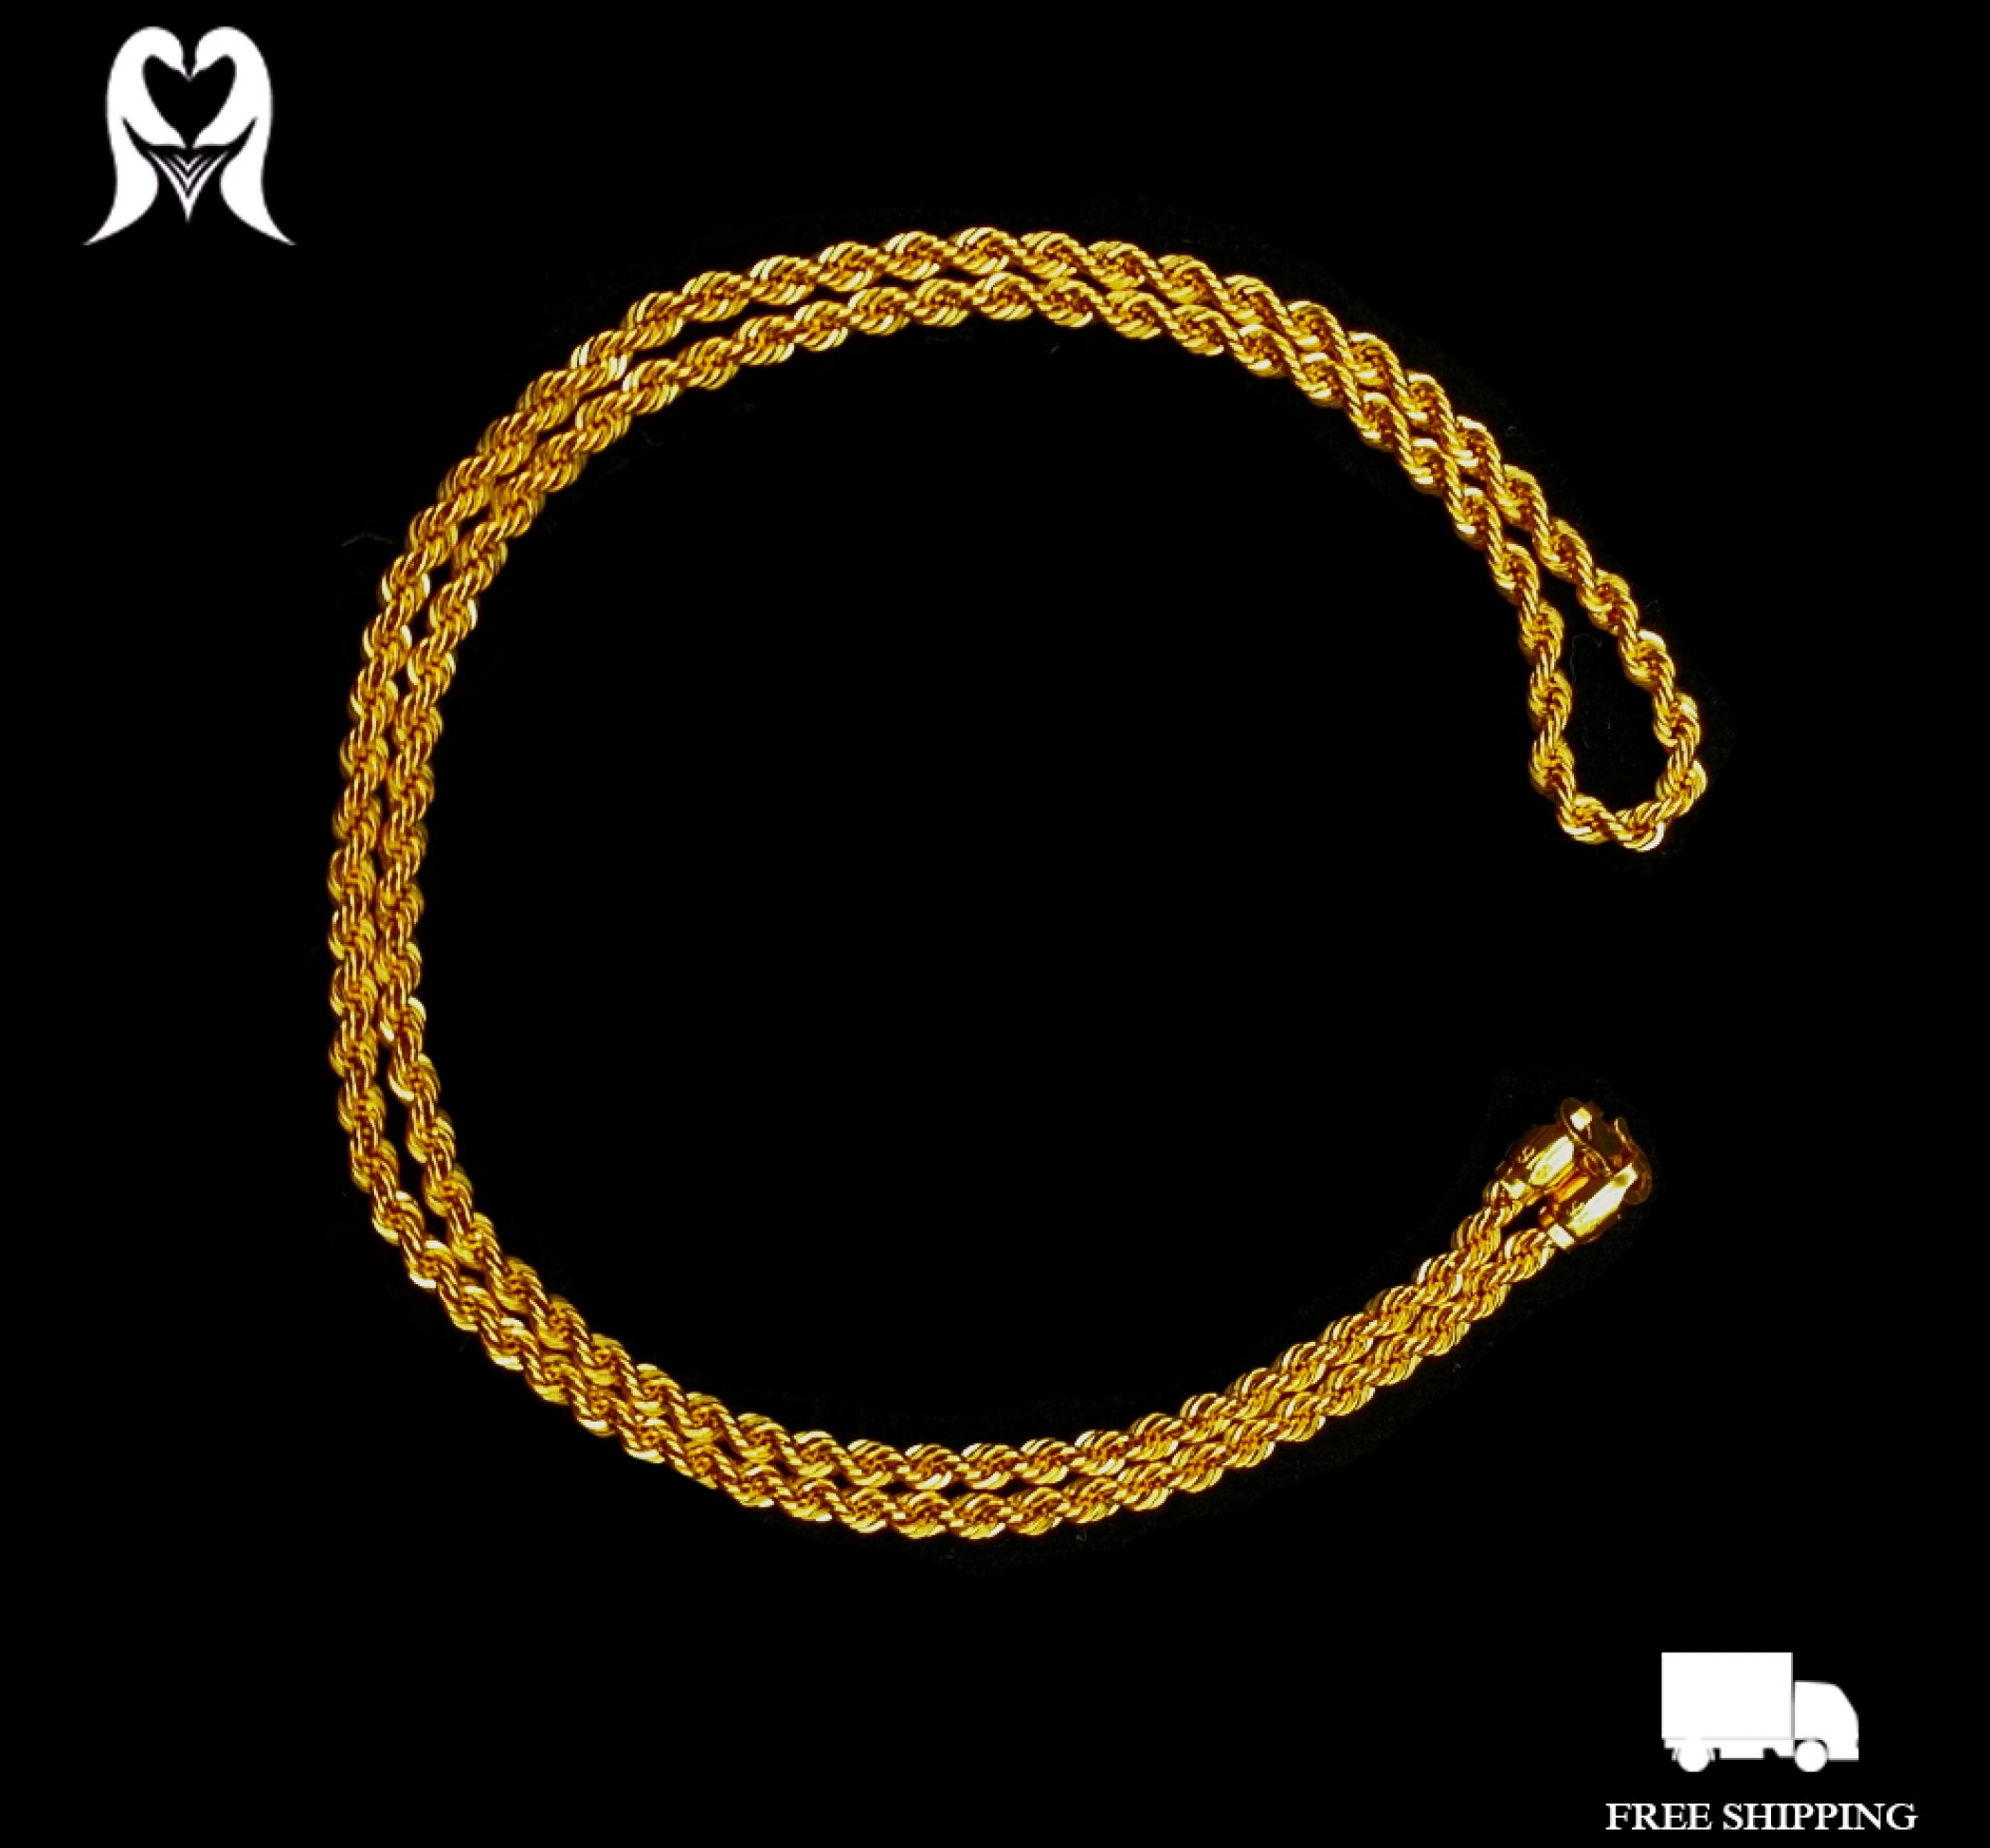 HOLLOW ROPE CHAIN [10.68g - 560221]